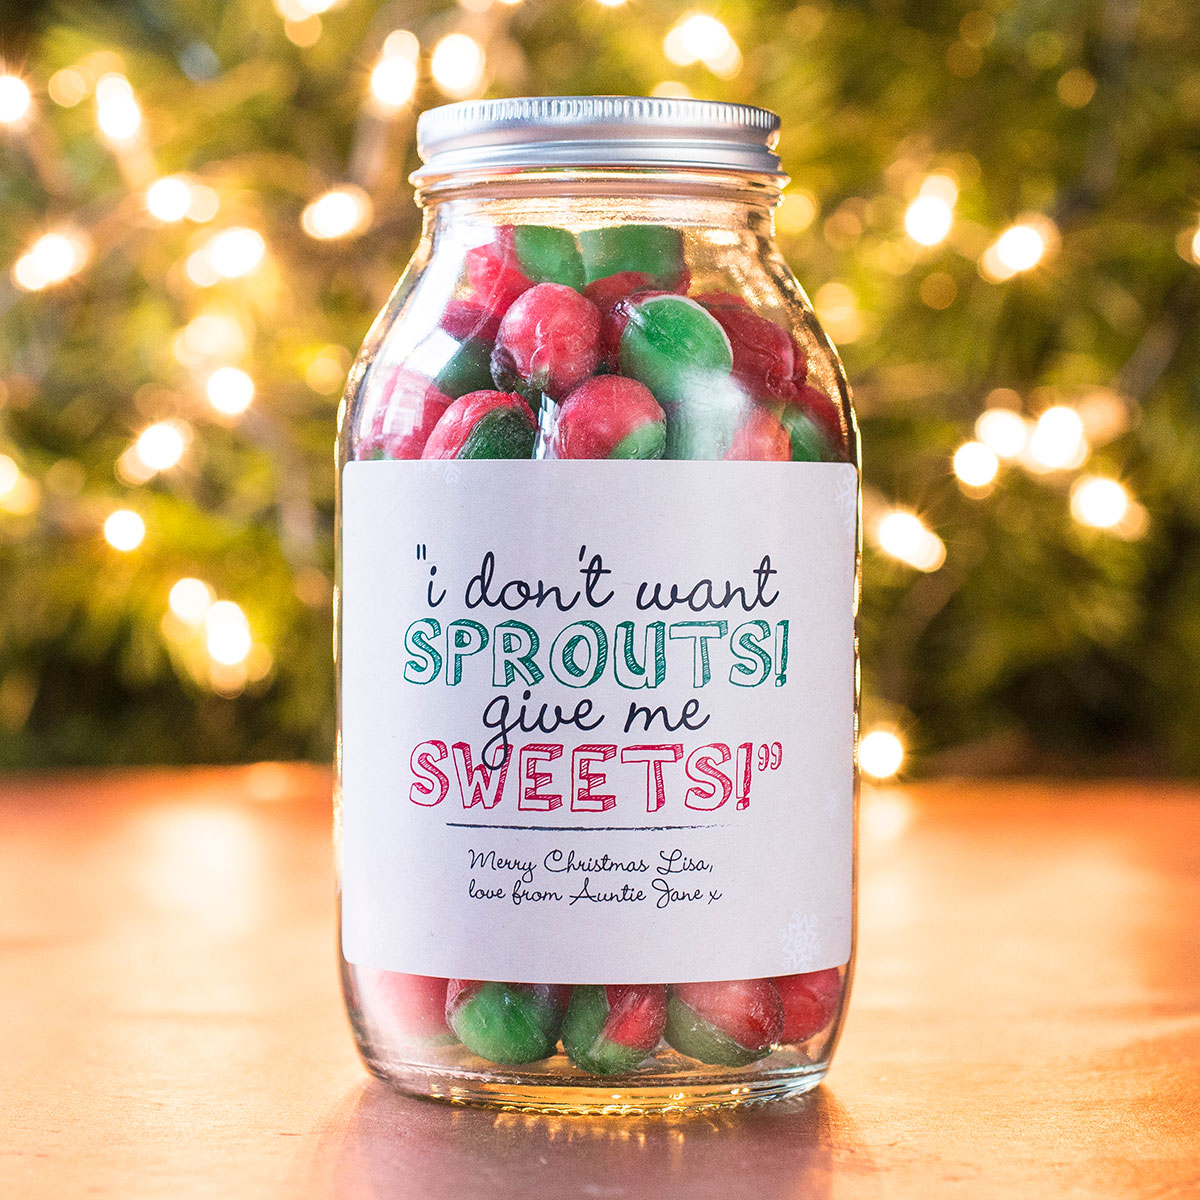 Personalised Jar Of Rosy Apple Sweets - Sprouts!